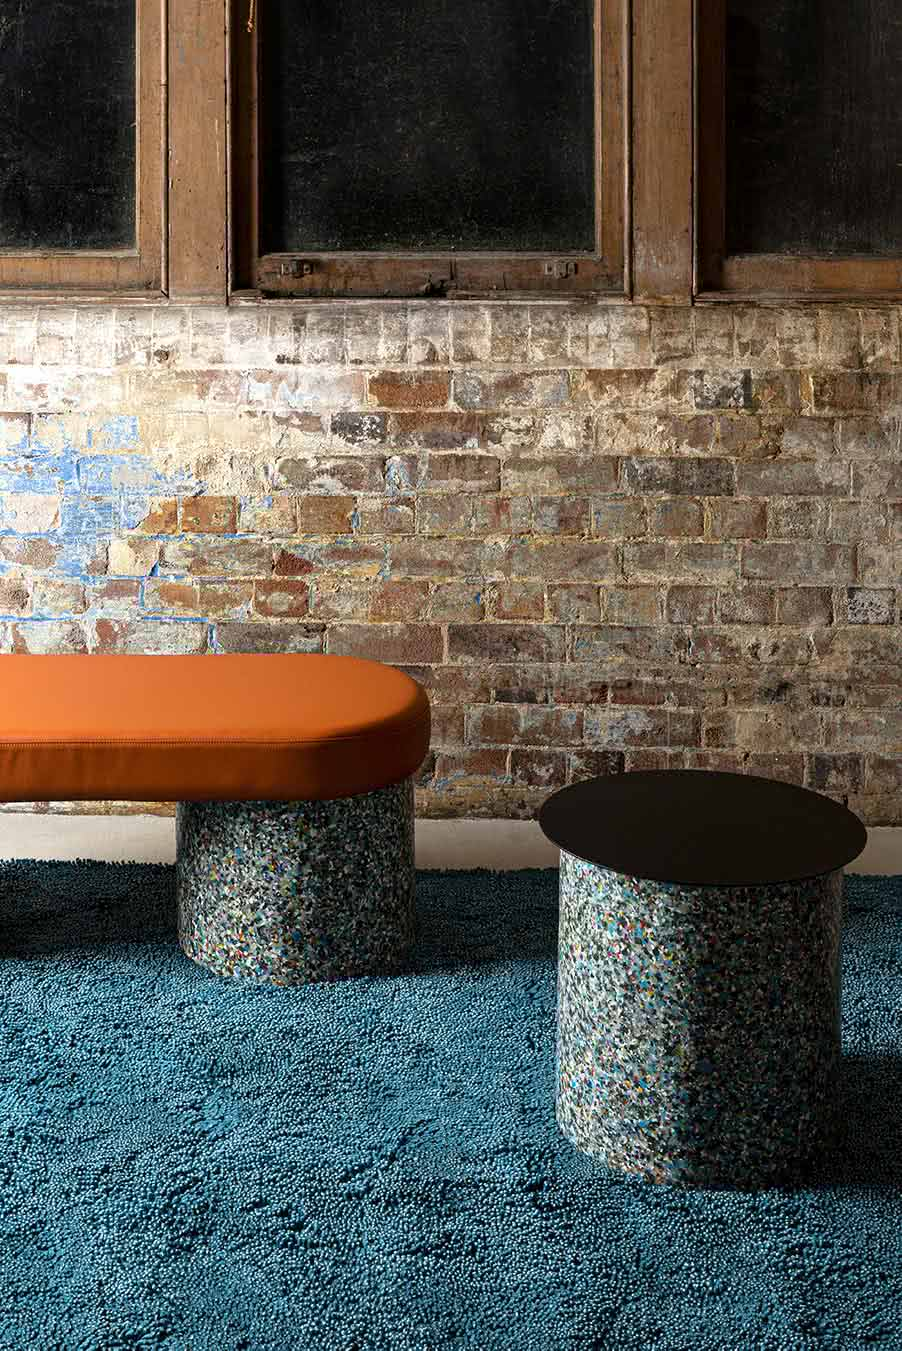 Styled view of textured Coral Shag rug in teal blue colour